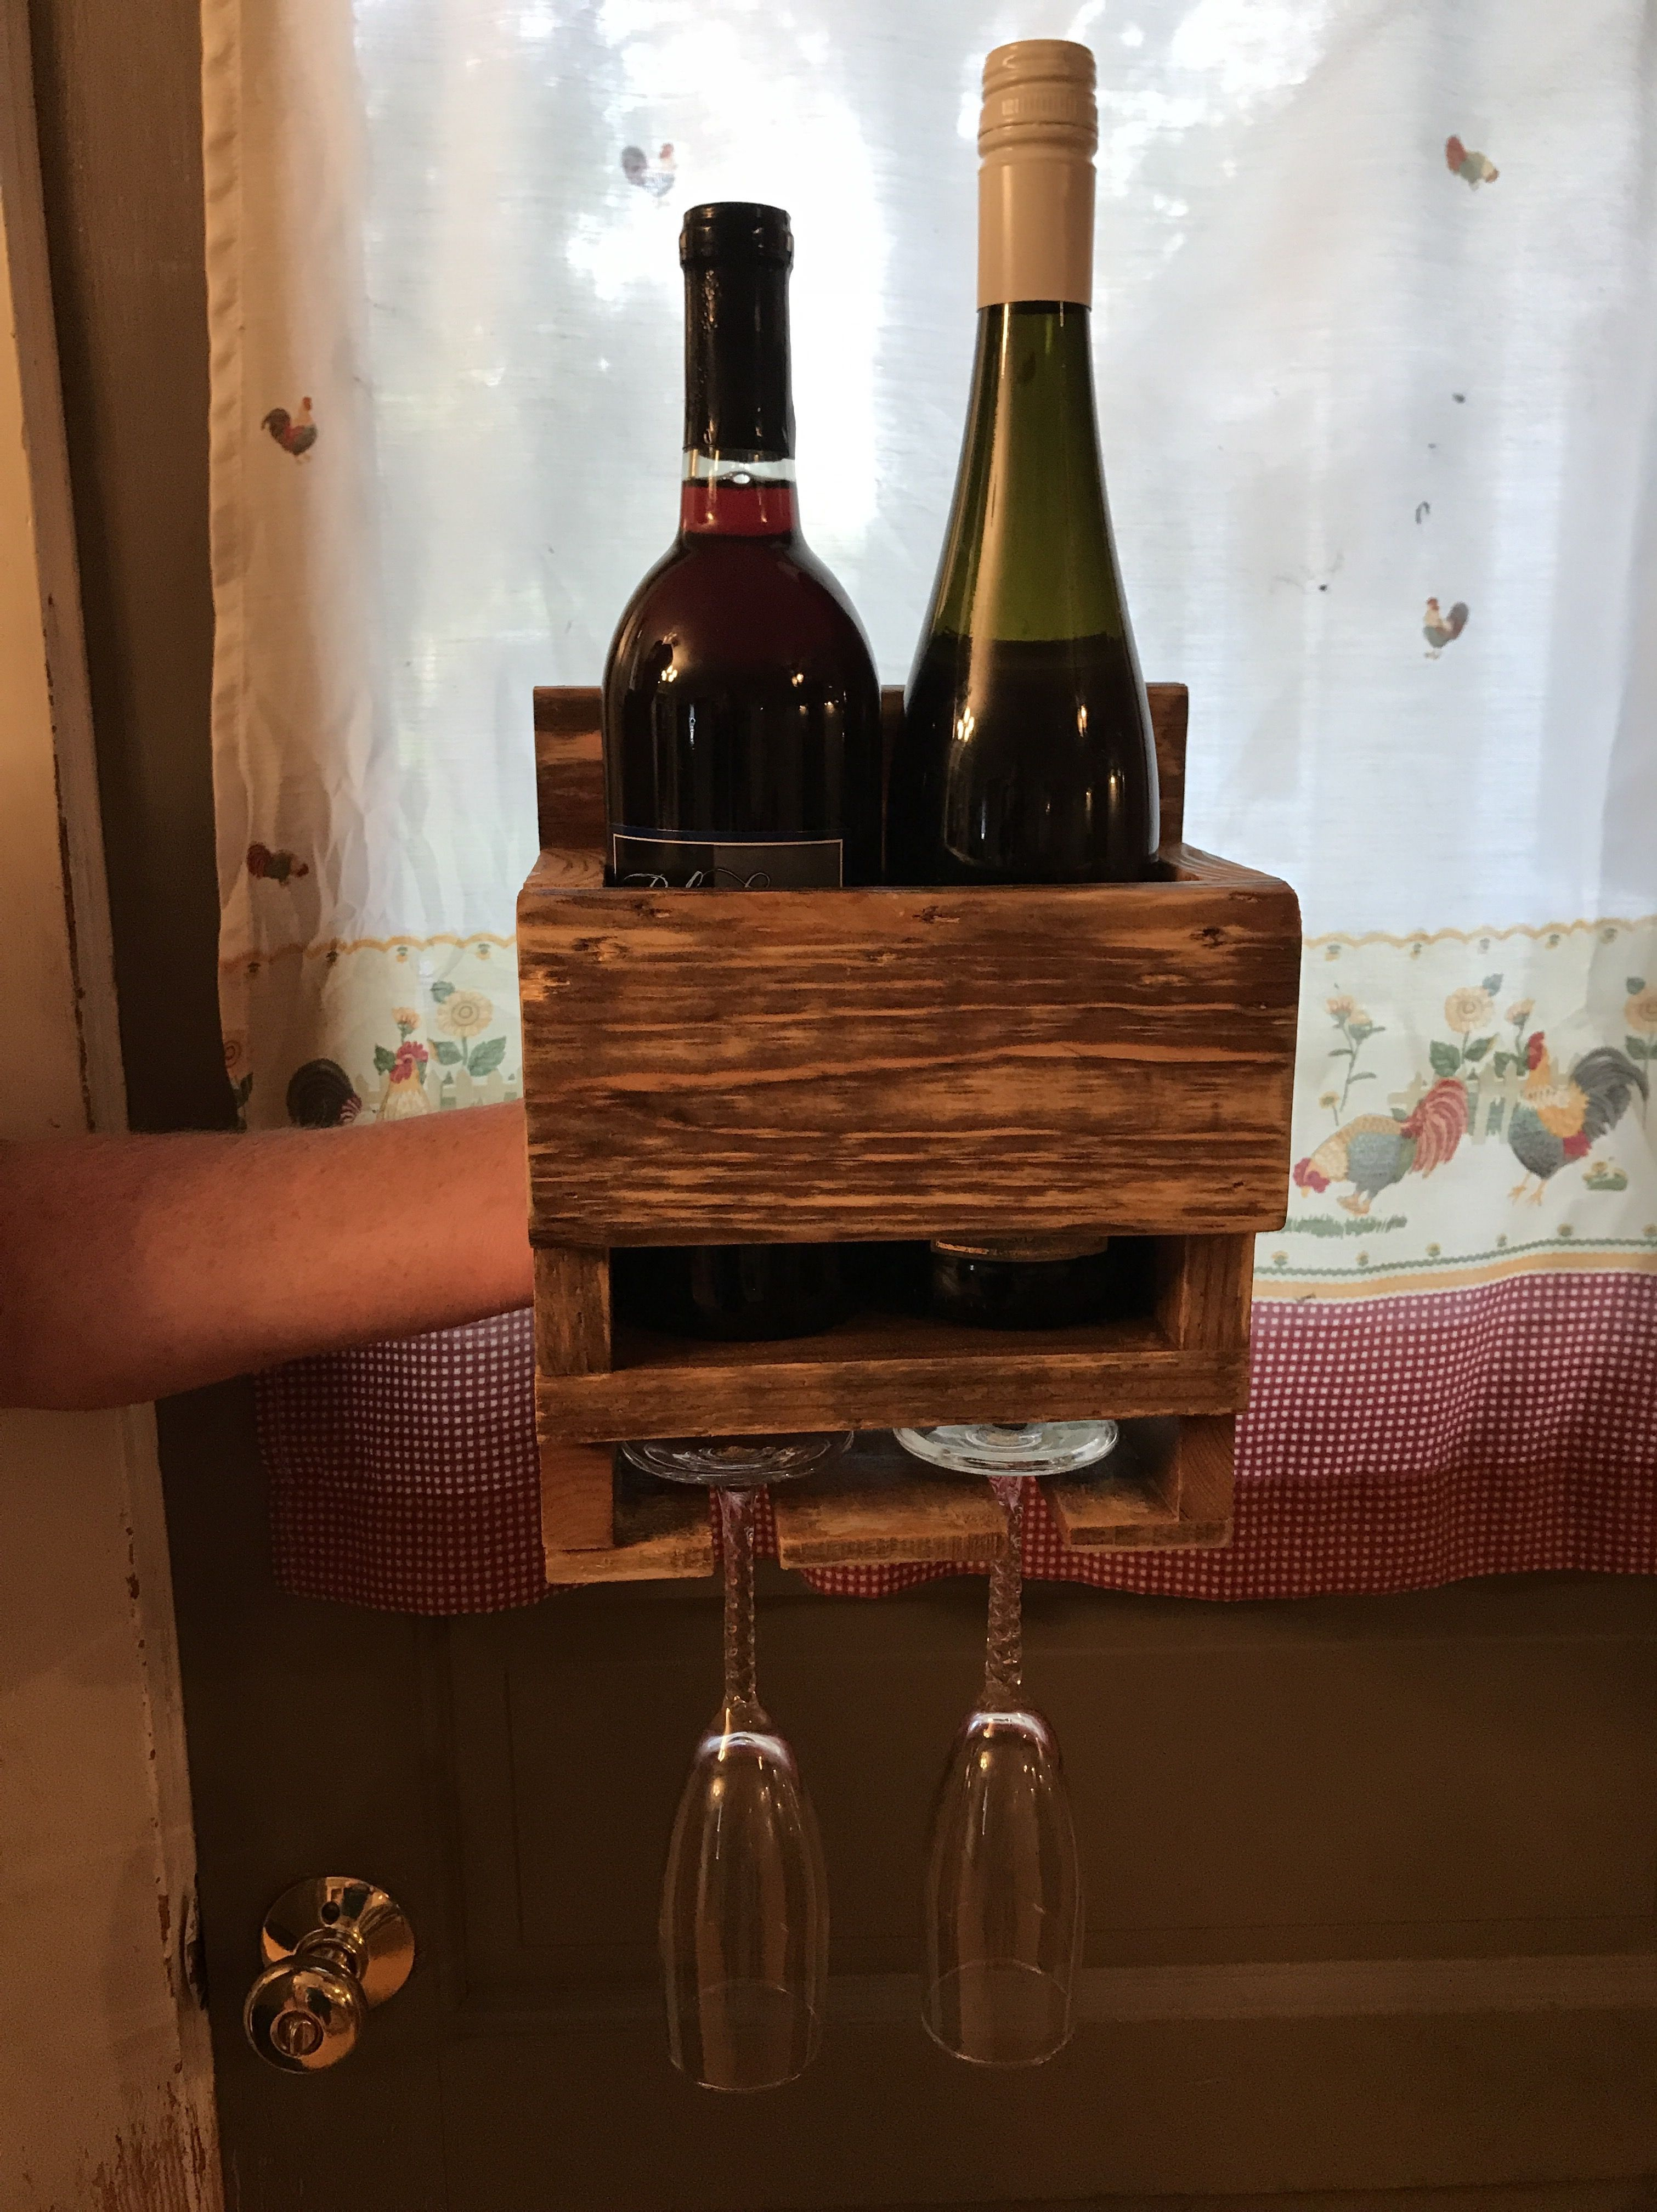 2 Bottle Couples Wall Wine Rack A Perfect Wedding Gift